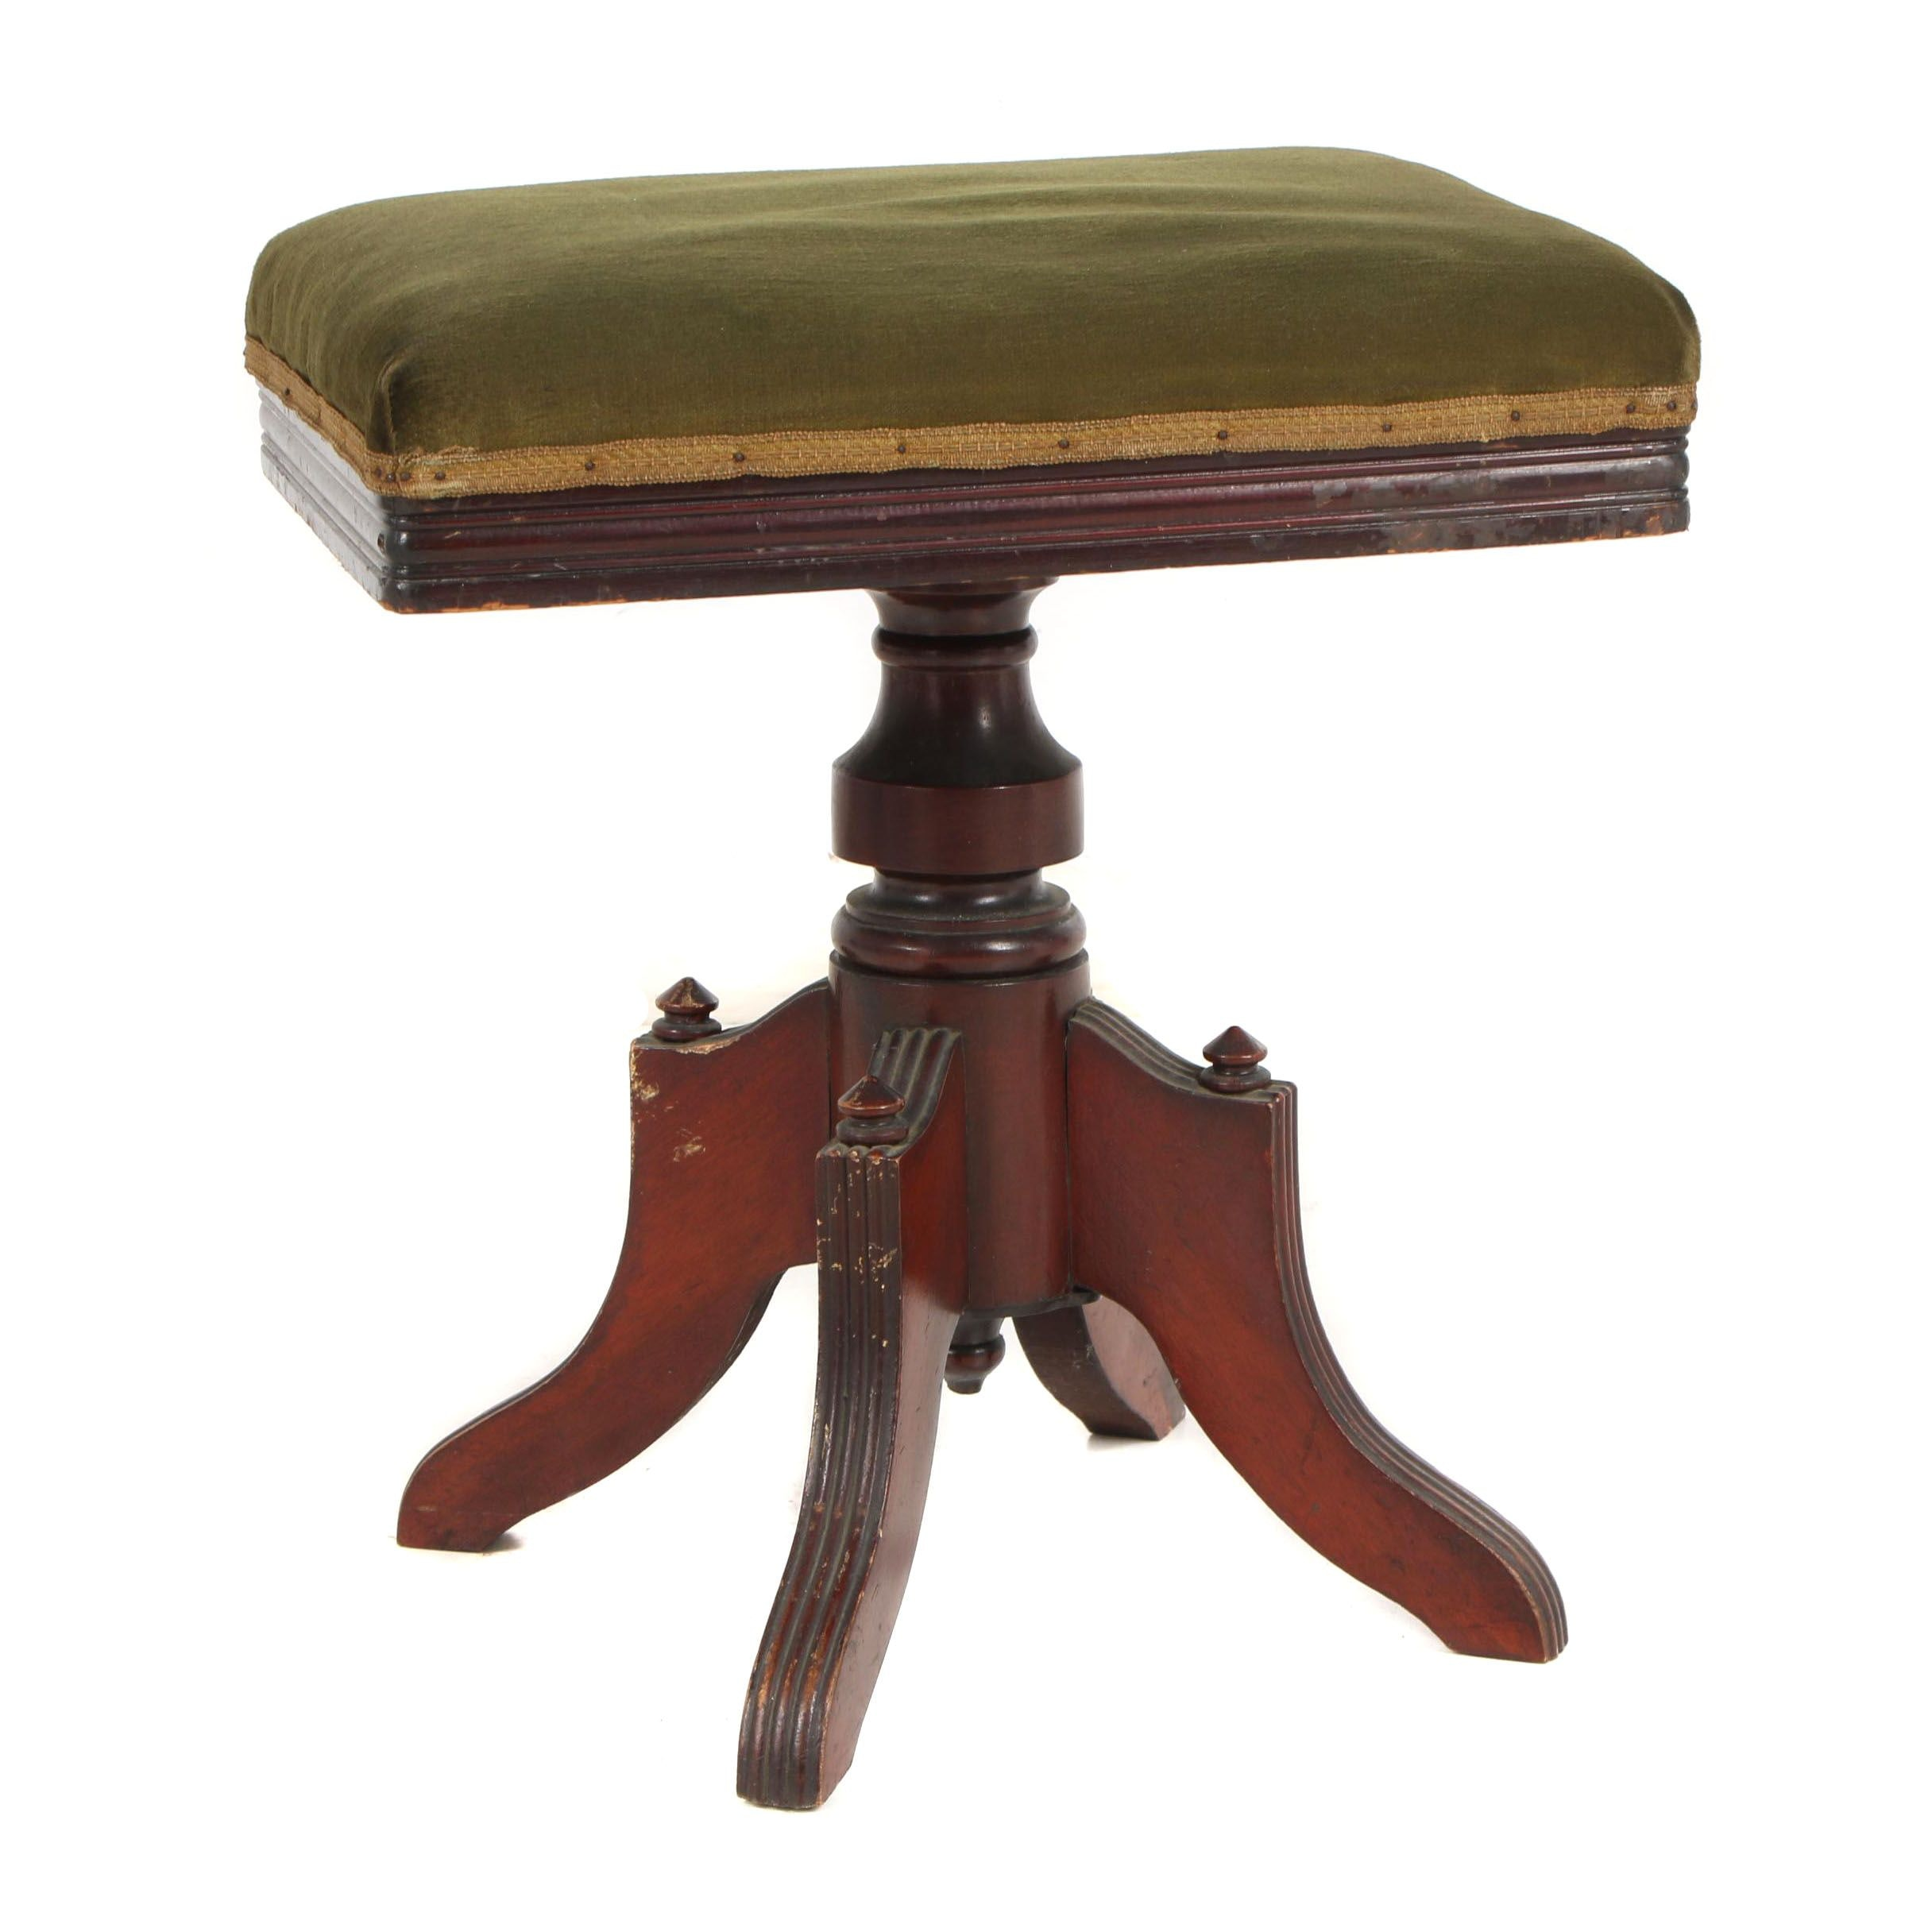 Victorian Walnut Upholstered Stool with Nailhead Trim, Circa 1890